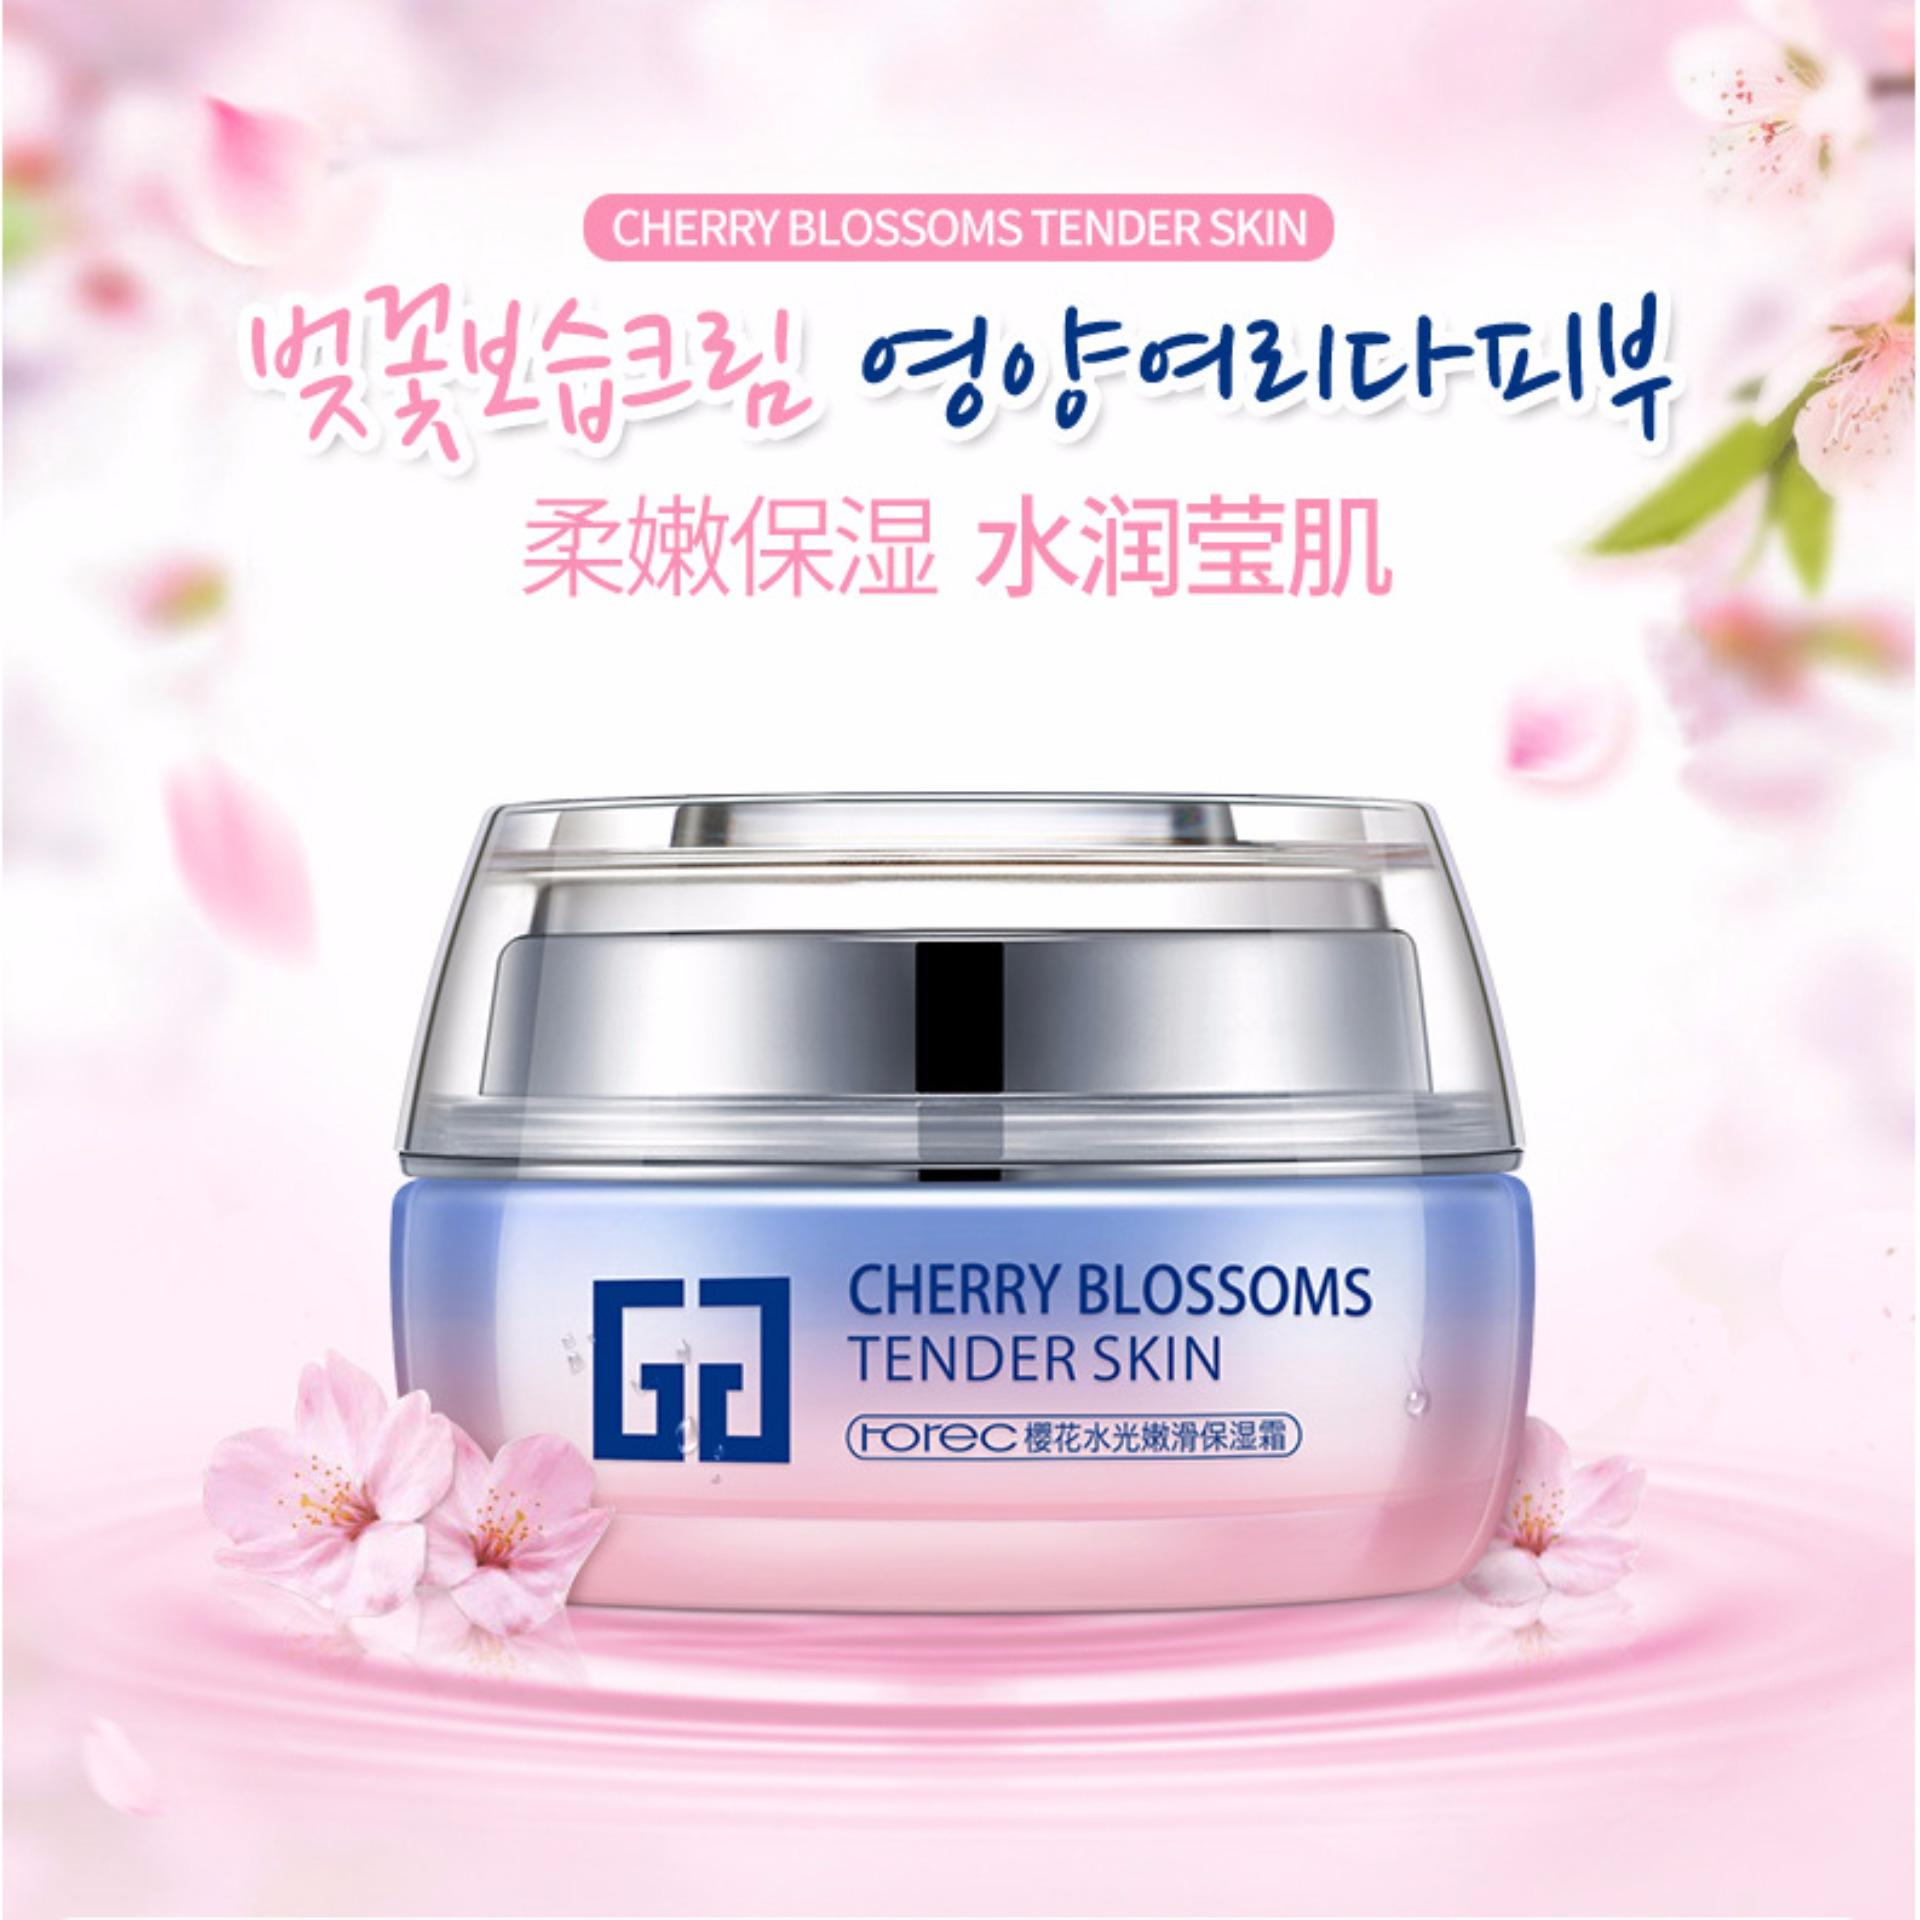 Harga Bioaqua Cherry Blossoms Moist F*c**l Cream Day Night Lotion Wajah 50Gr Yang Murah